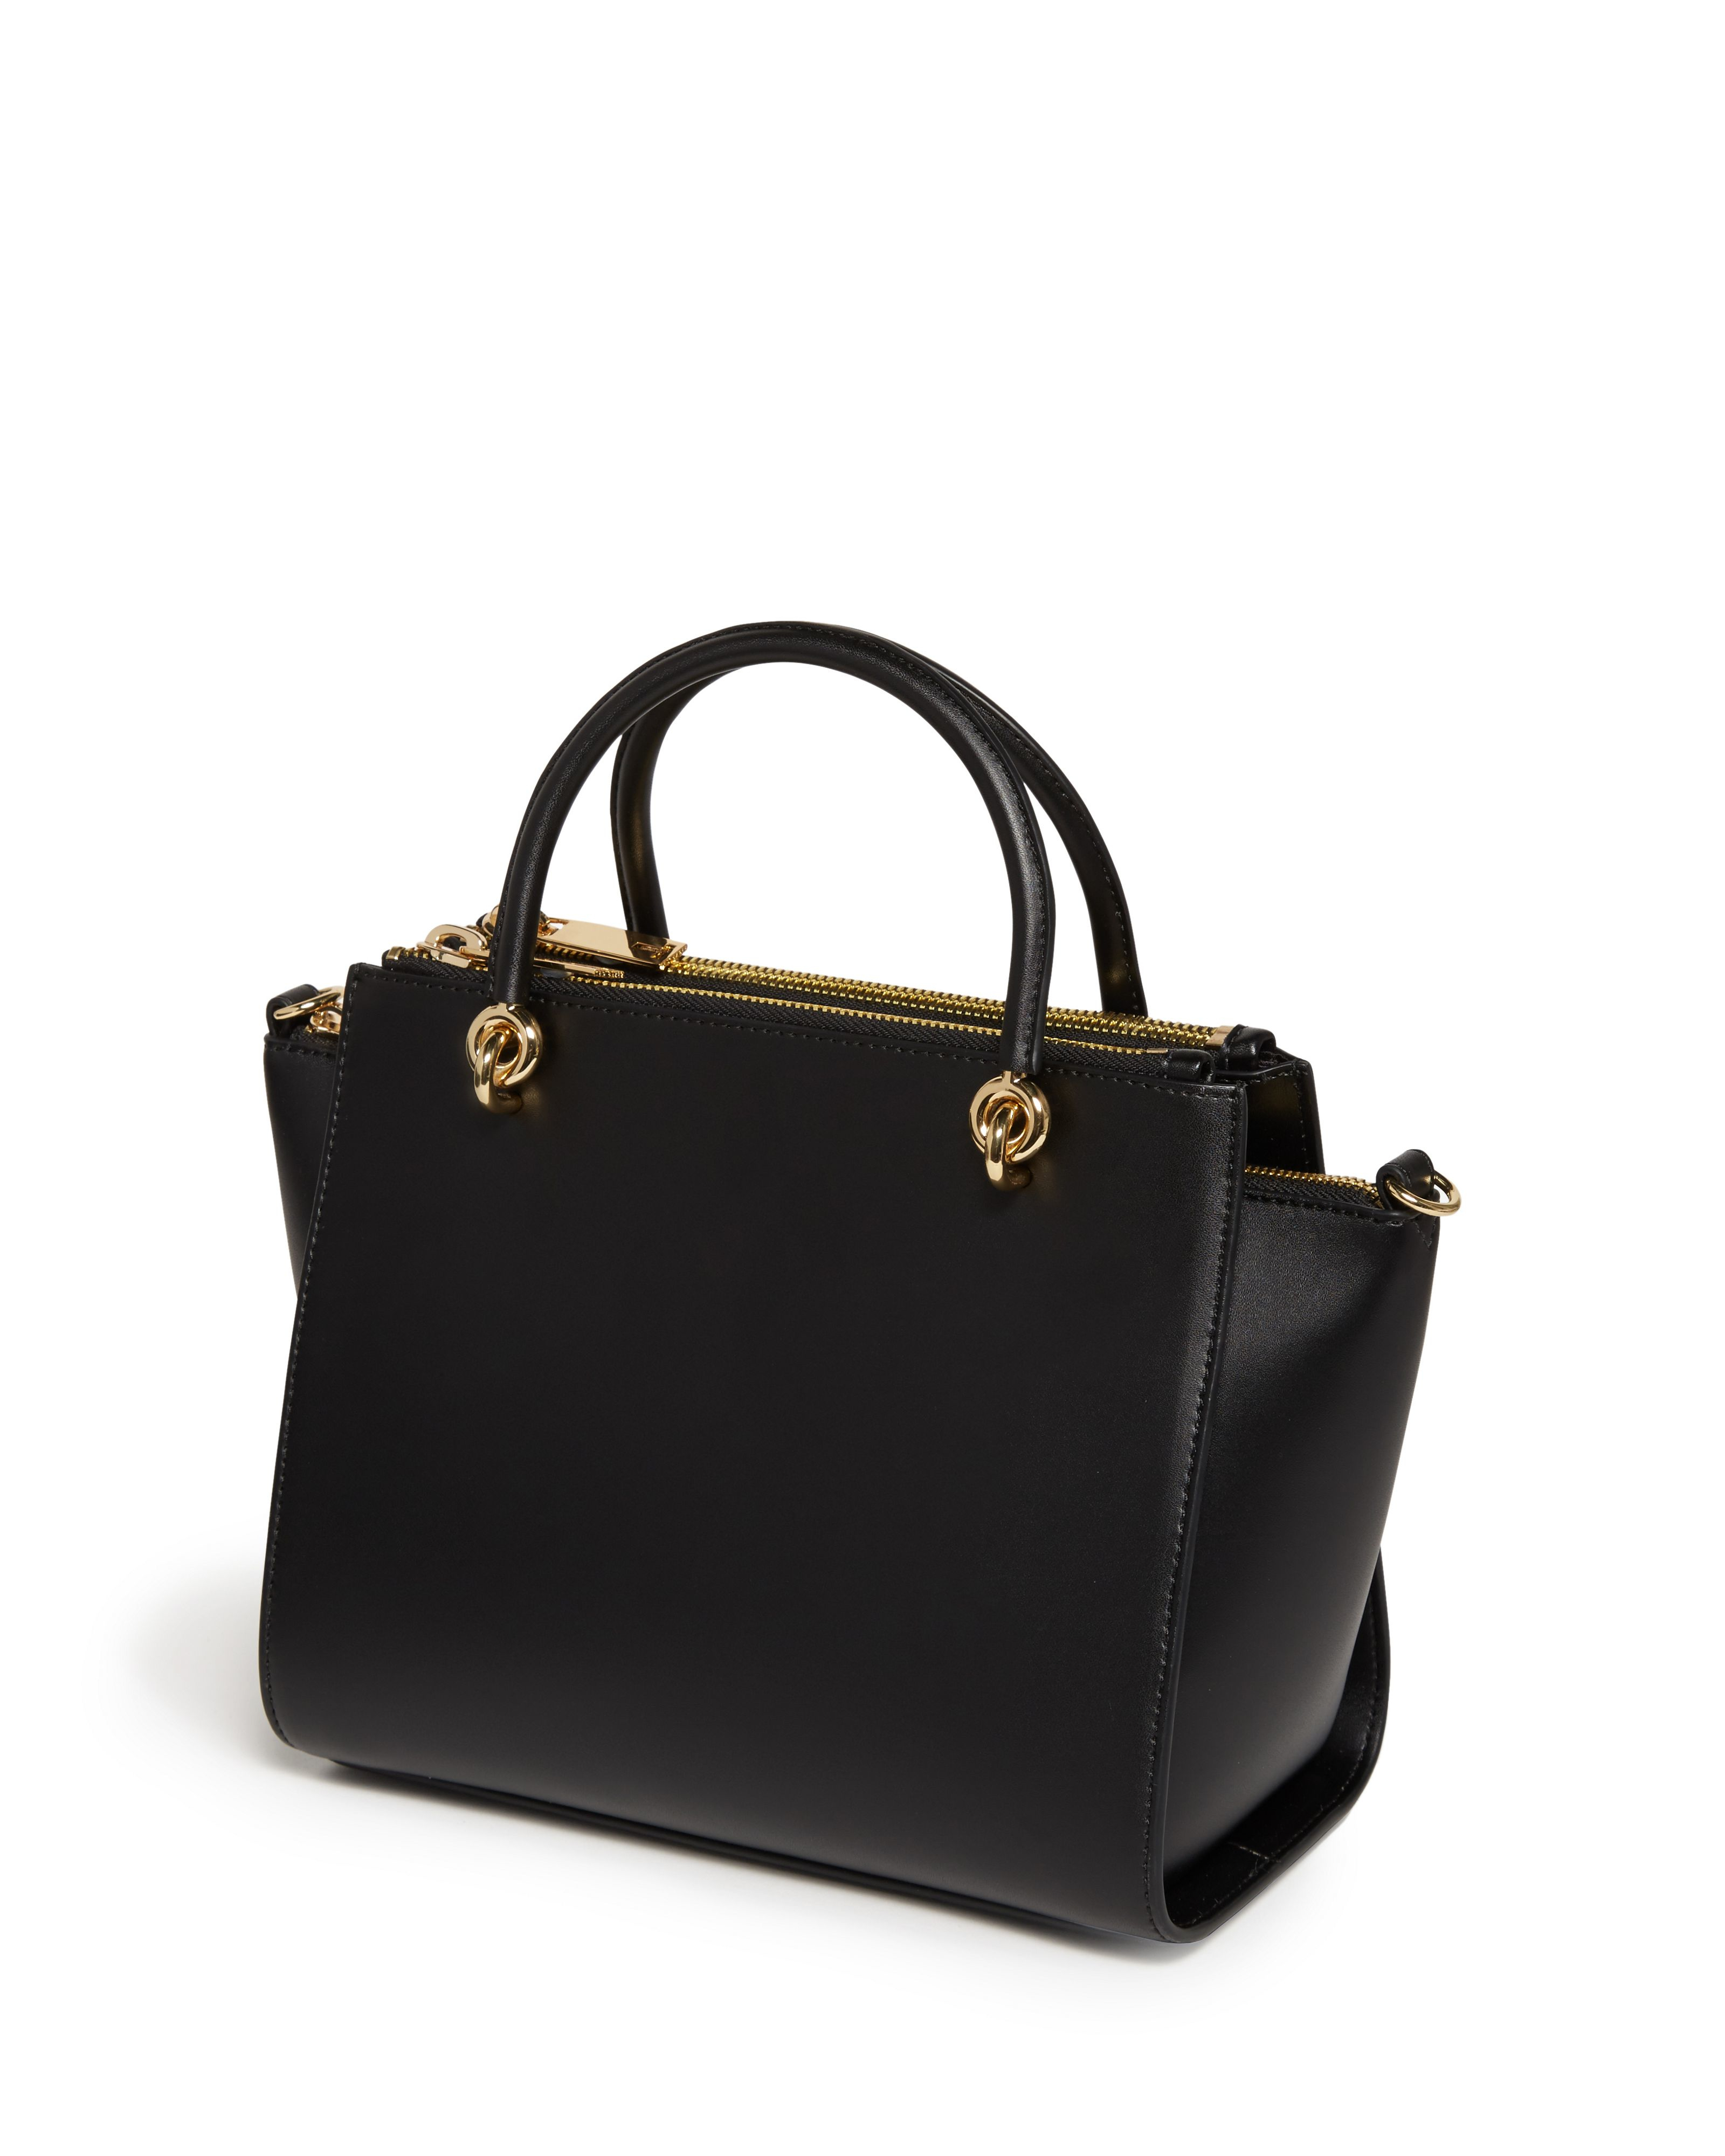 Ted baker Haylie Textured Leather Zip Tote Bag in Black | Lyst